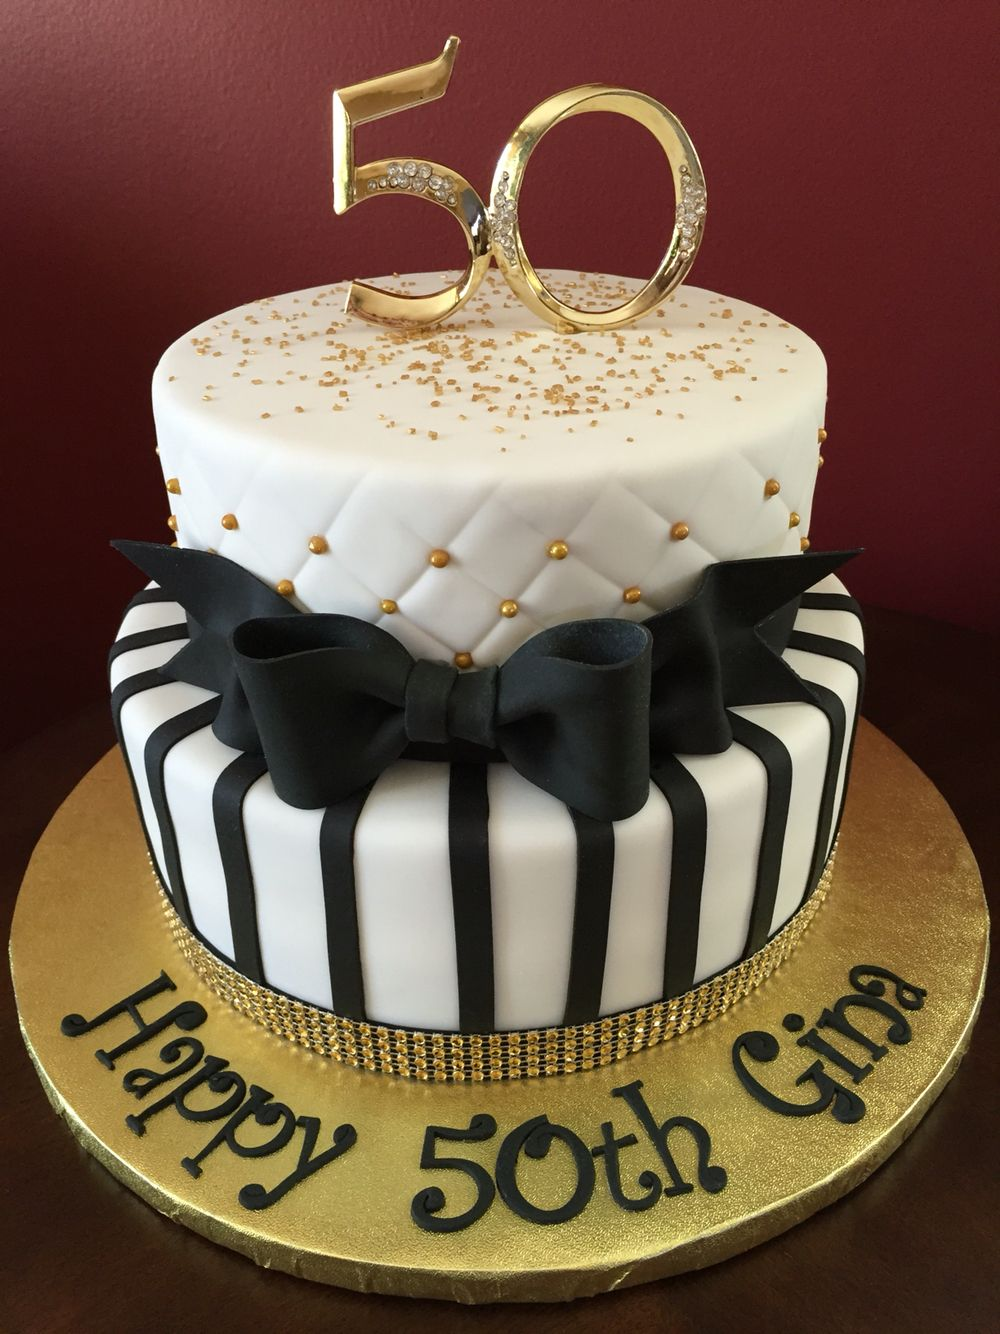 50th birthday cake with picture on it ; 7c6fe212521d53438f47f3a8a9b484c9